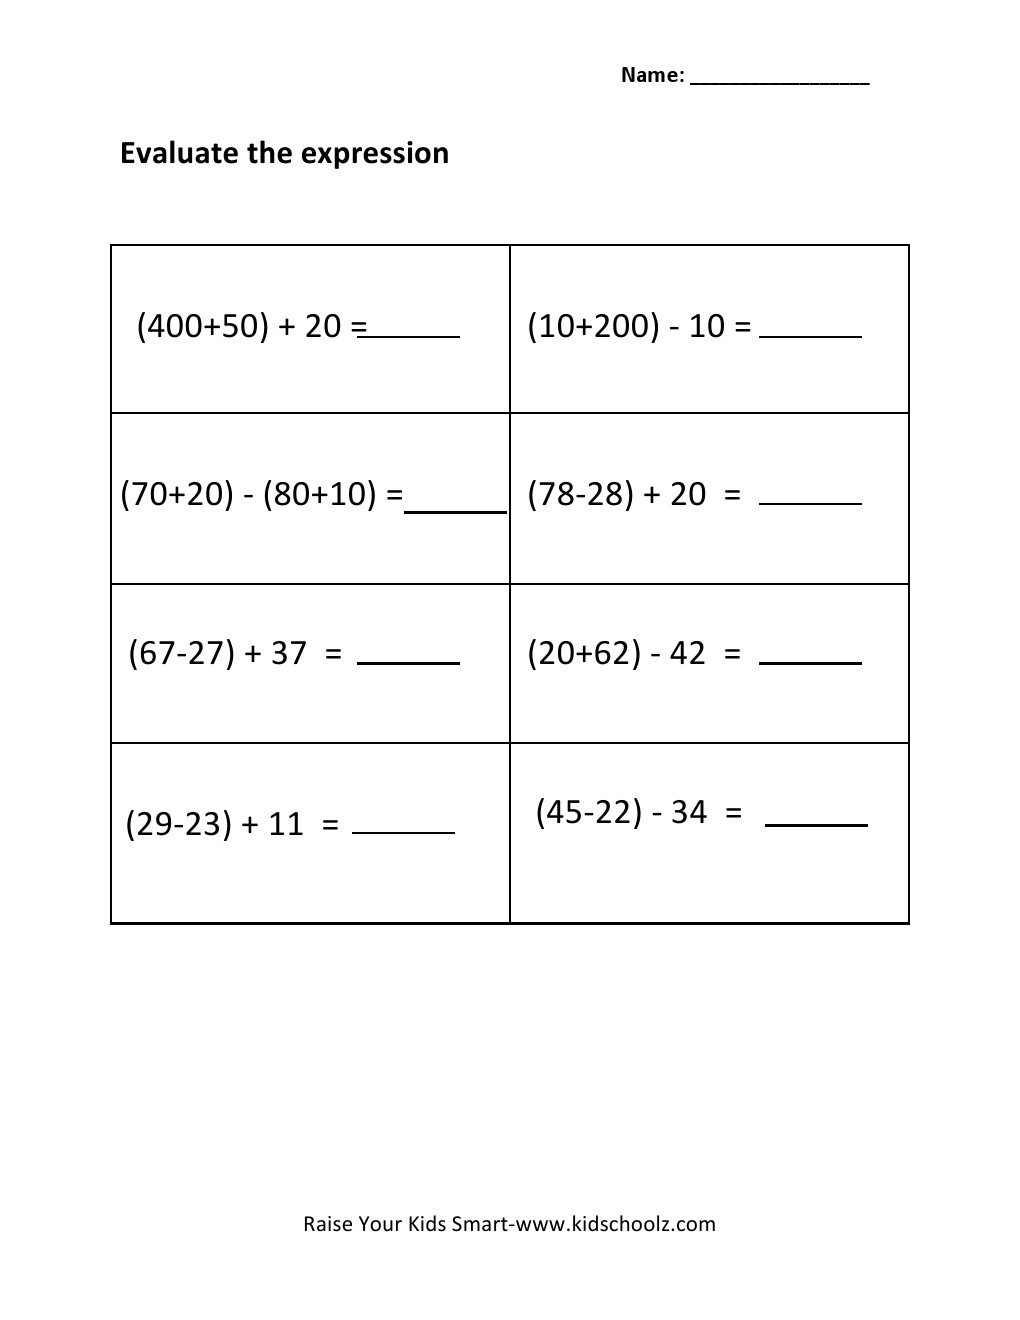 Worksheets Evaluate The Expression Worksheet grade 3 evaluating algebraic expressions worksheet 2 worksheet